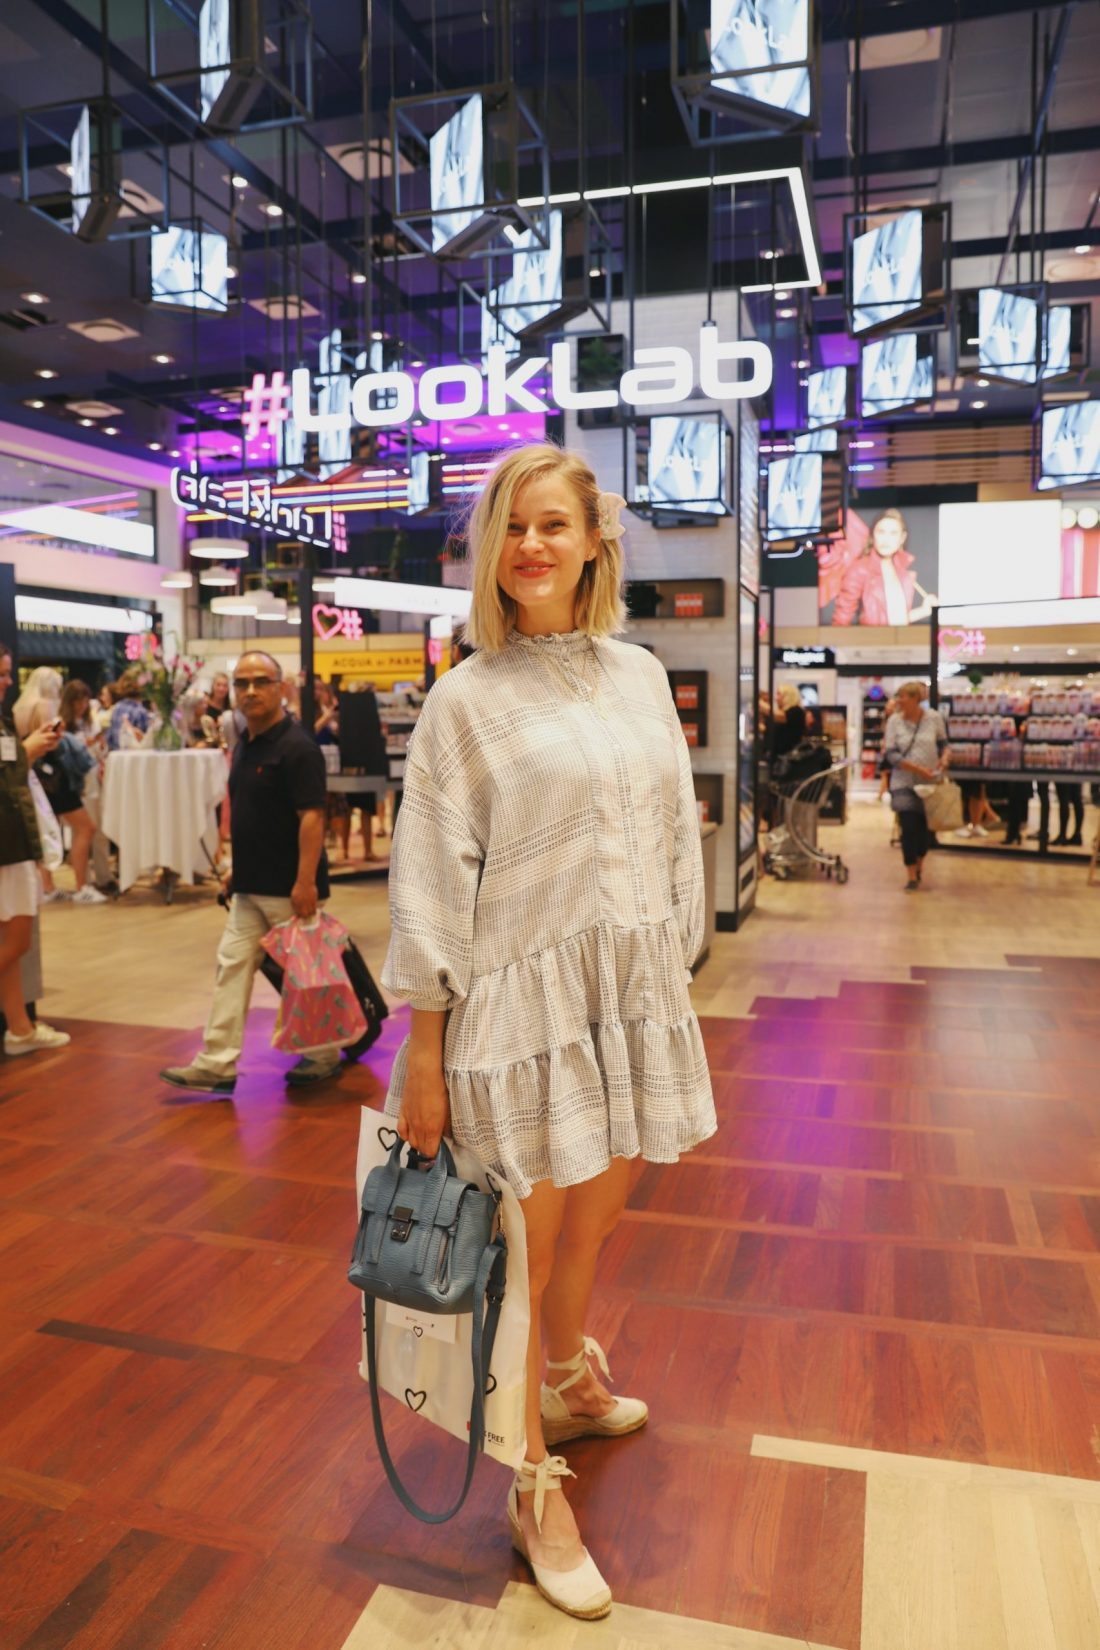 rockpaperdresses, Cathrine WIdunok Wichmand, CPH Airport, Looklab, The journey is on